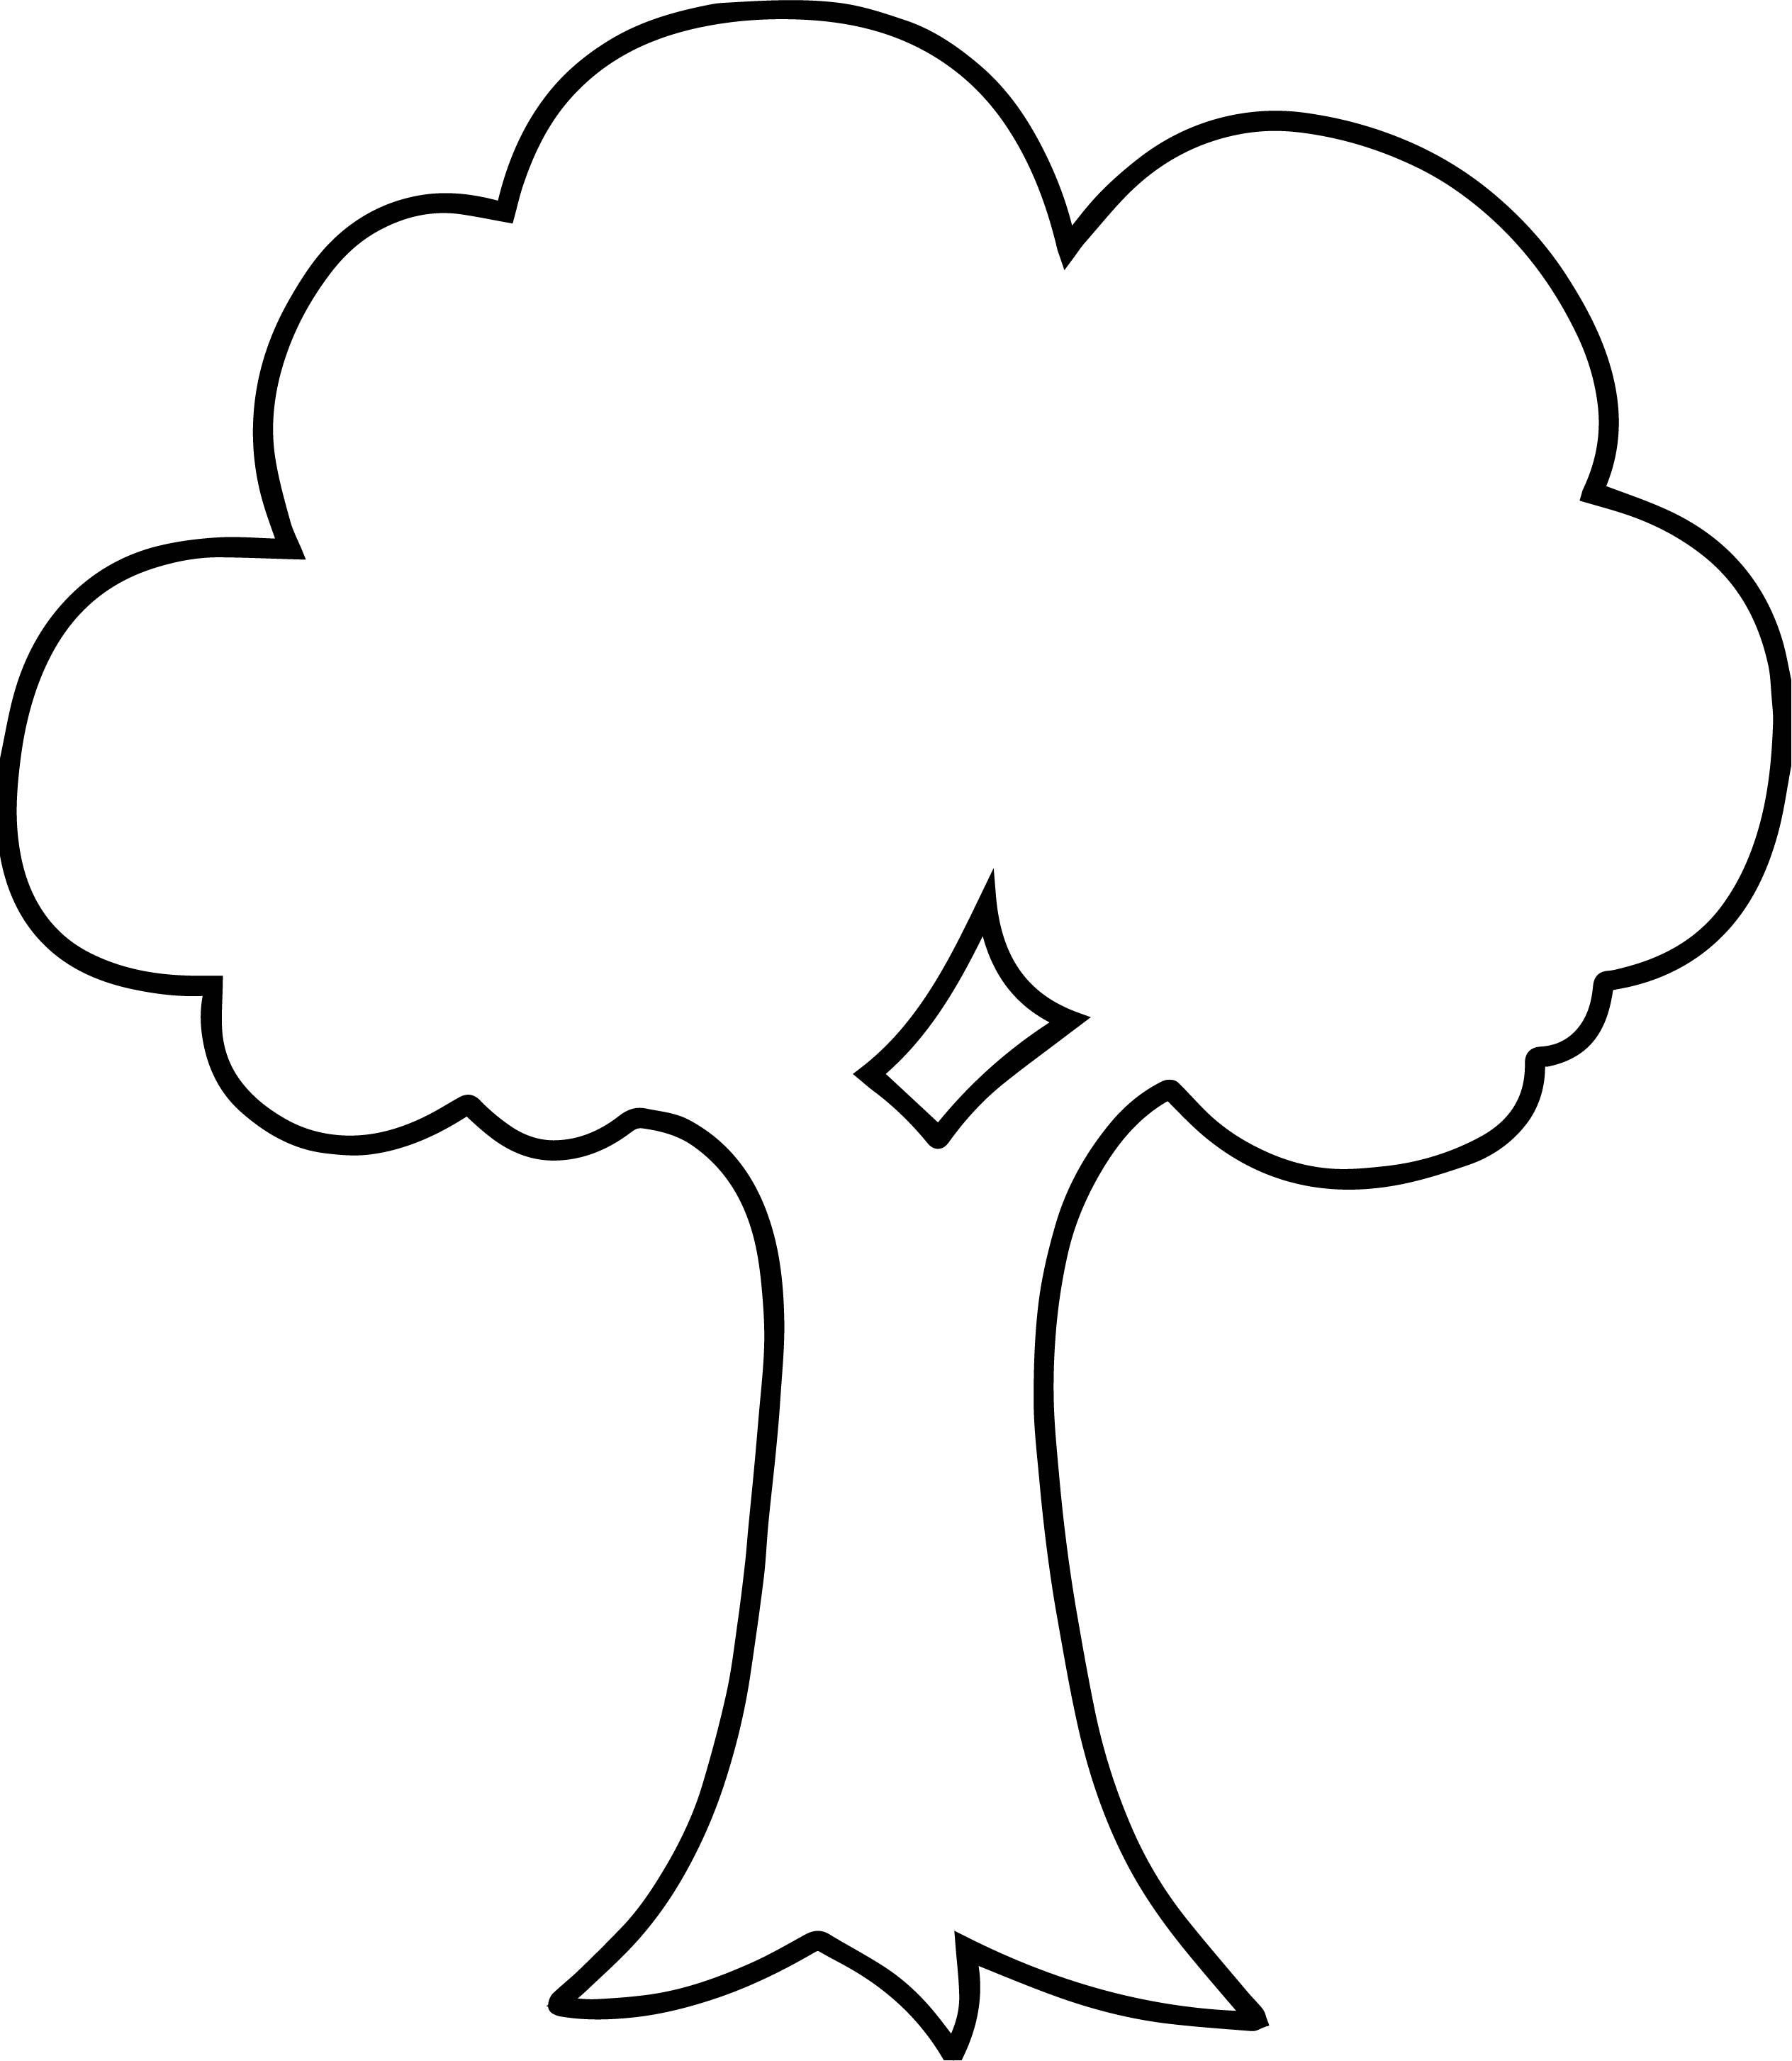 Empty Apple Tree Coloring Page Coloring Pictures Of A Apple